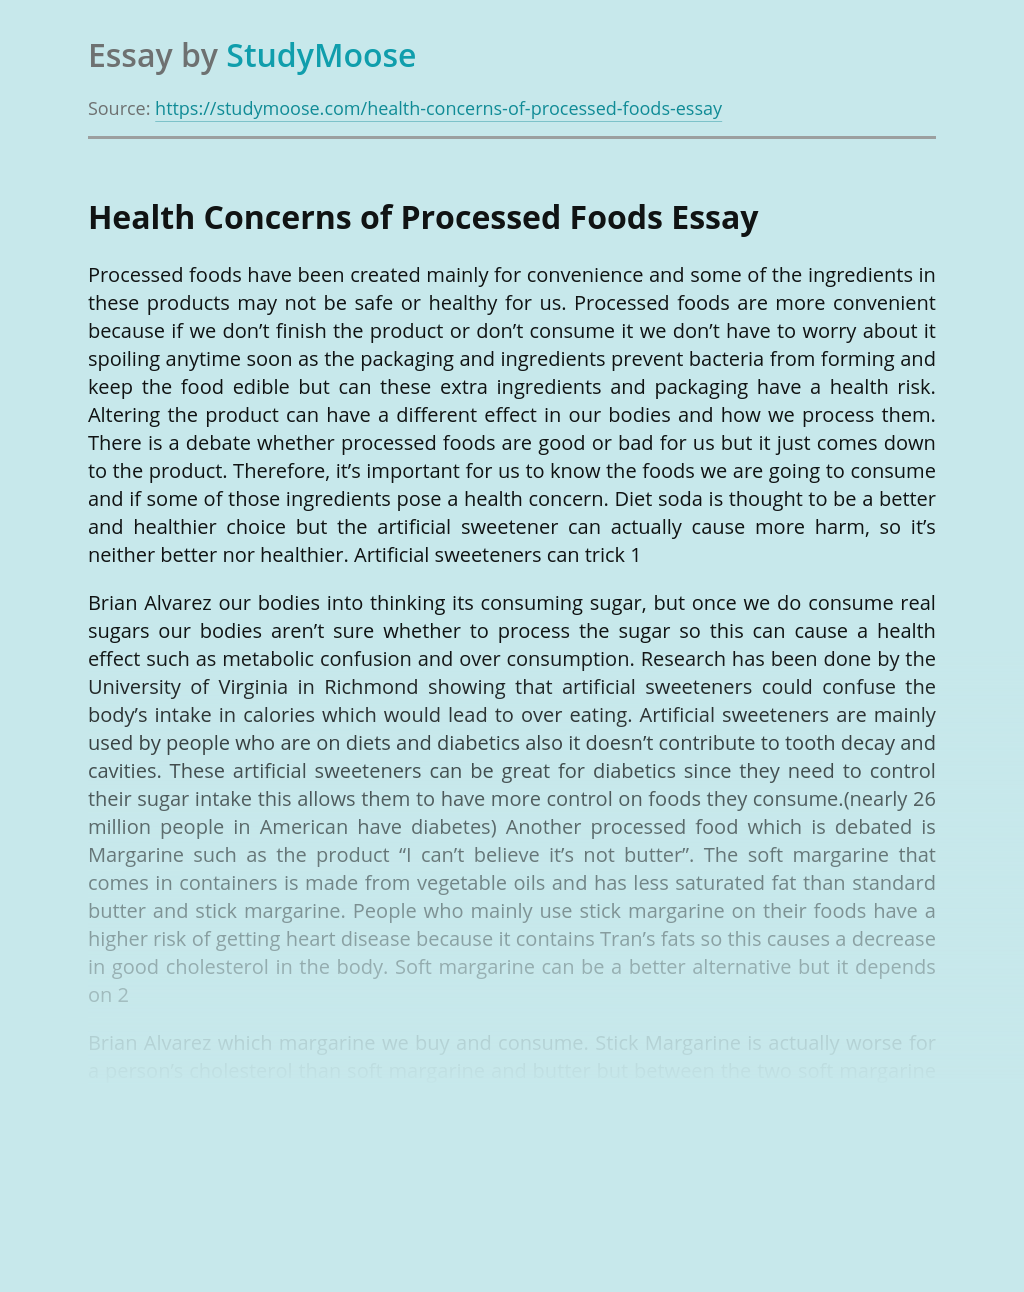 Health Concerns of Processed Foods